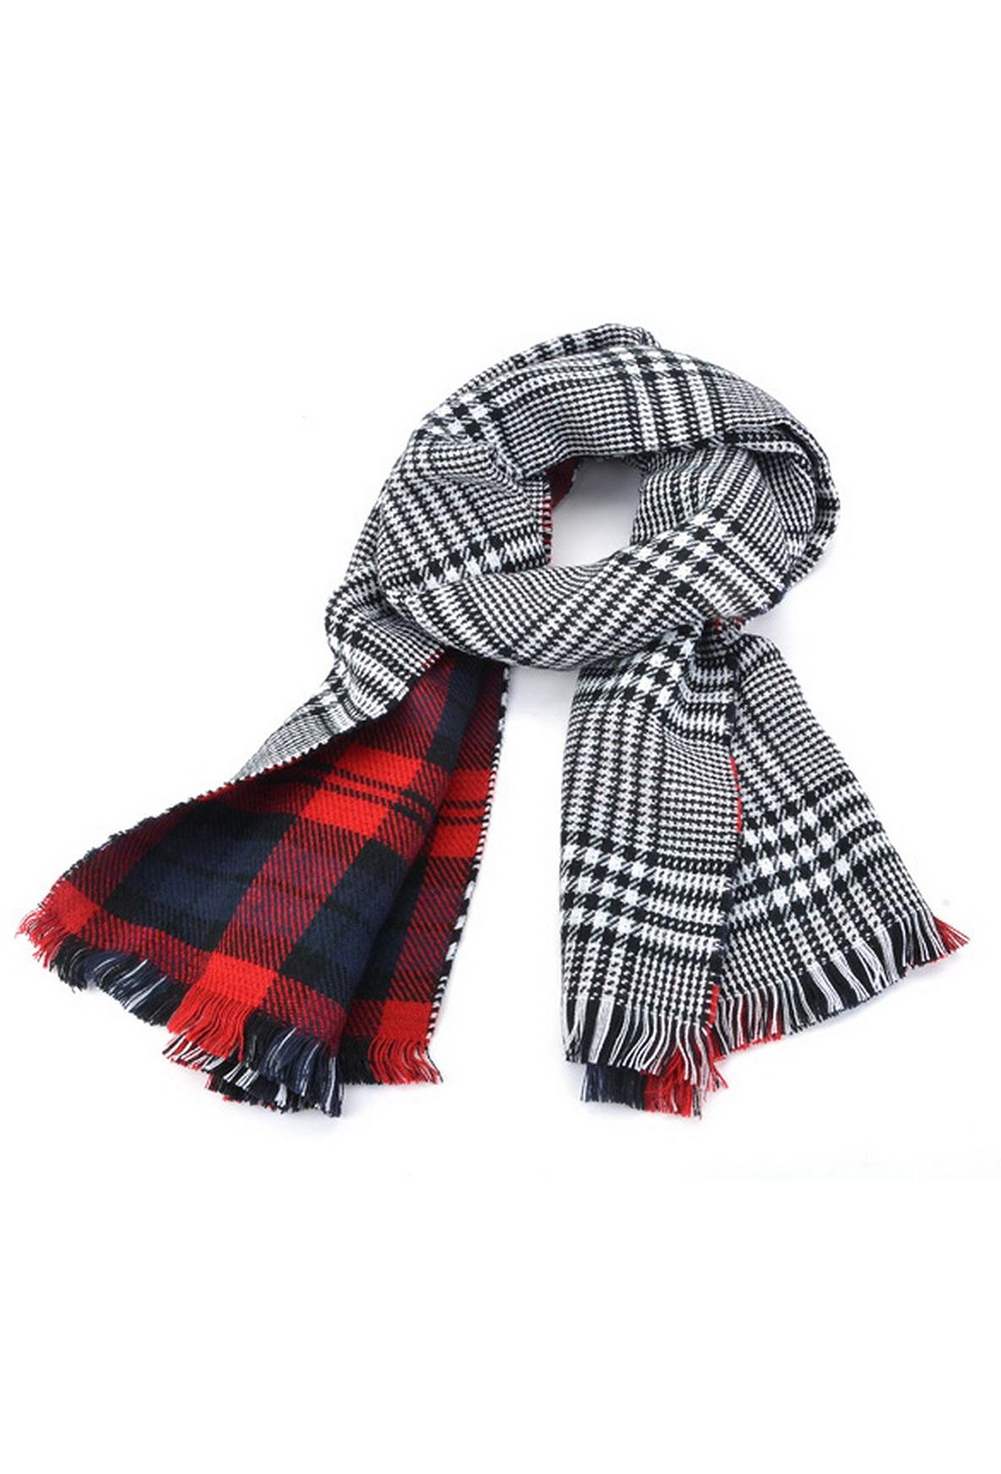 Lady Women's Long Check Plaid Tartan   Scarf     Wraps   Shawl Stole Warm   Scarves   Red